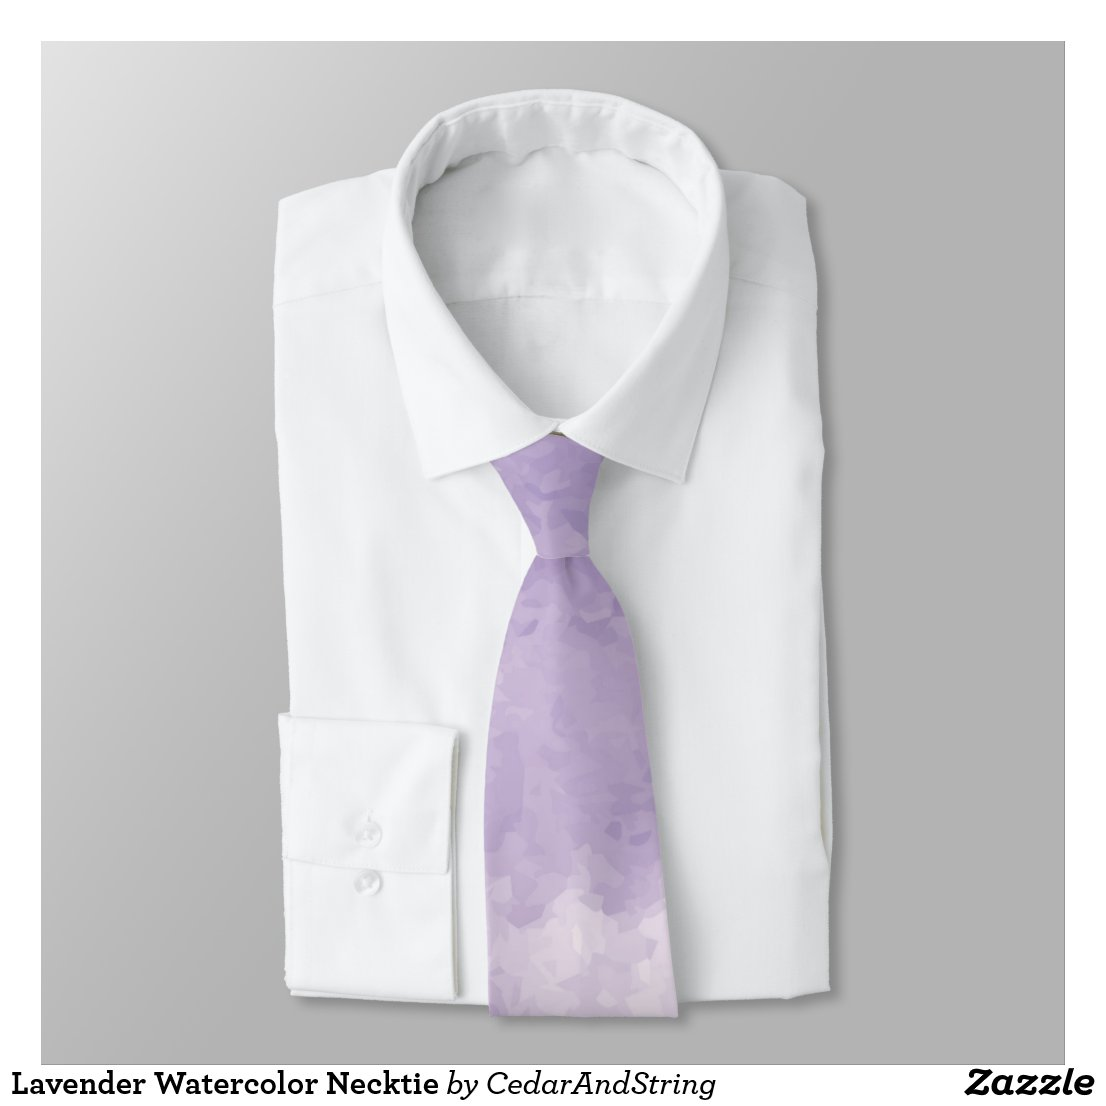 Lavender Watercolor Necktie